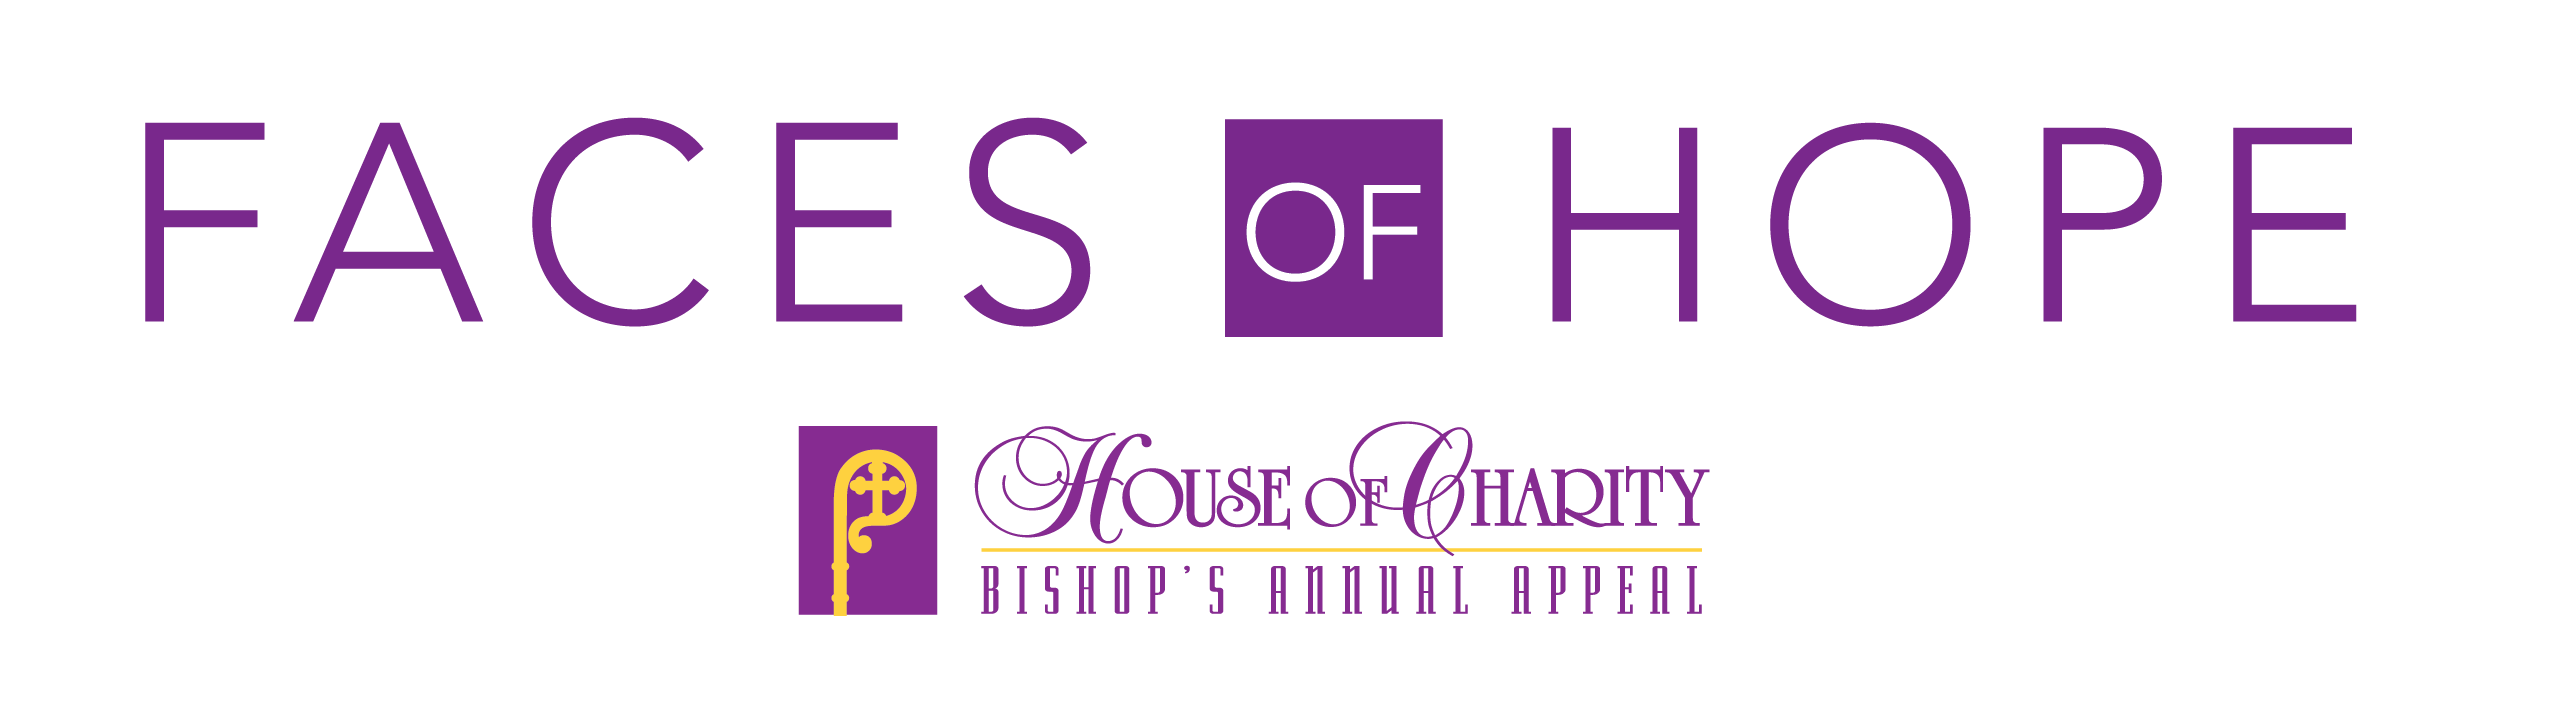 Faces-Of-Hope